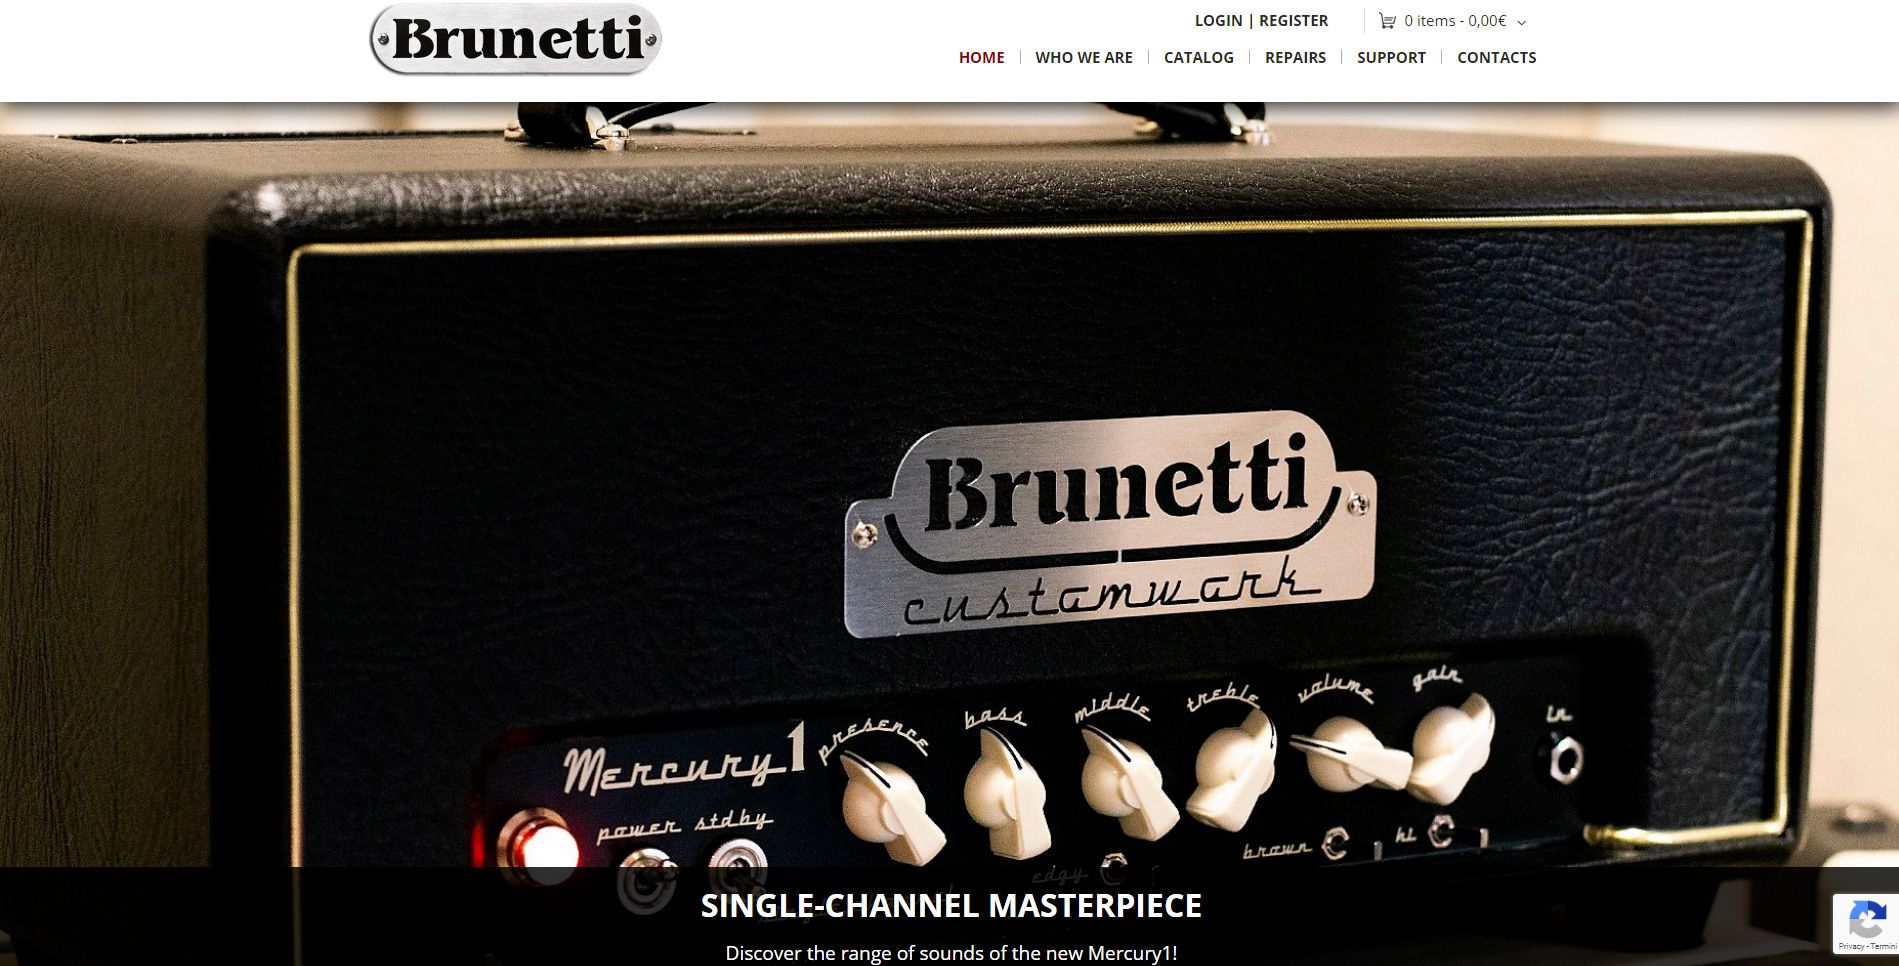 La home page del sito web di Brunetti Tube Amplification.